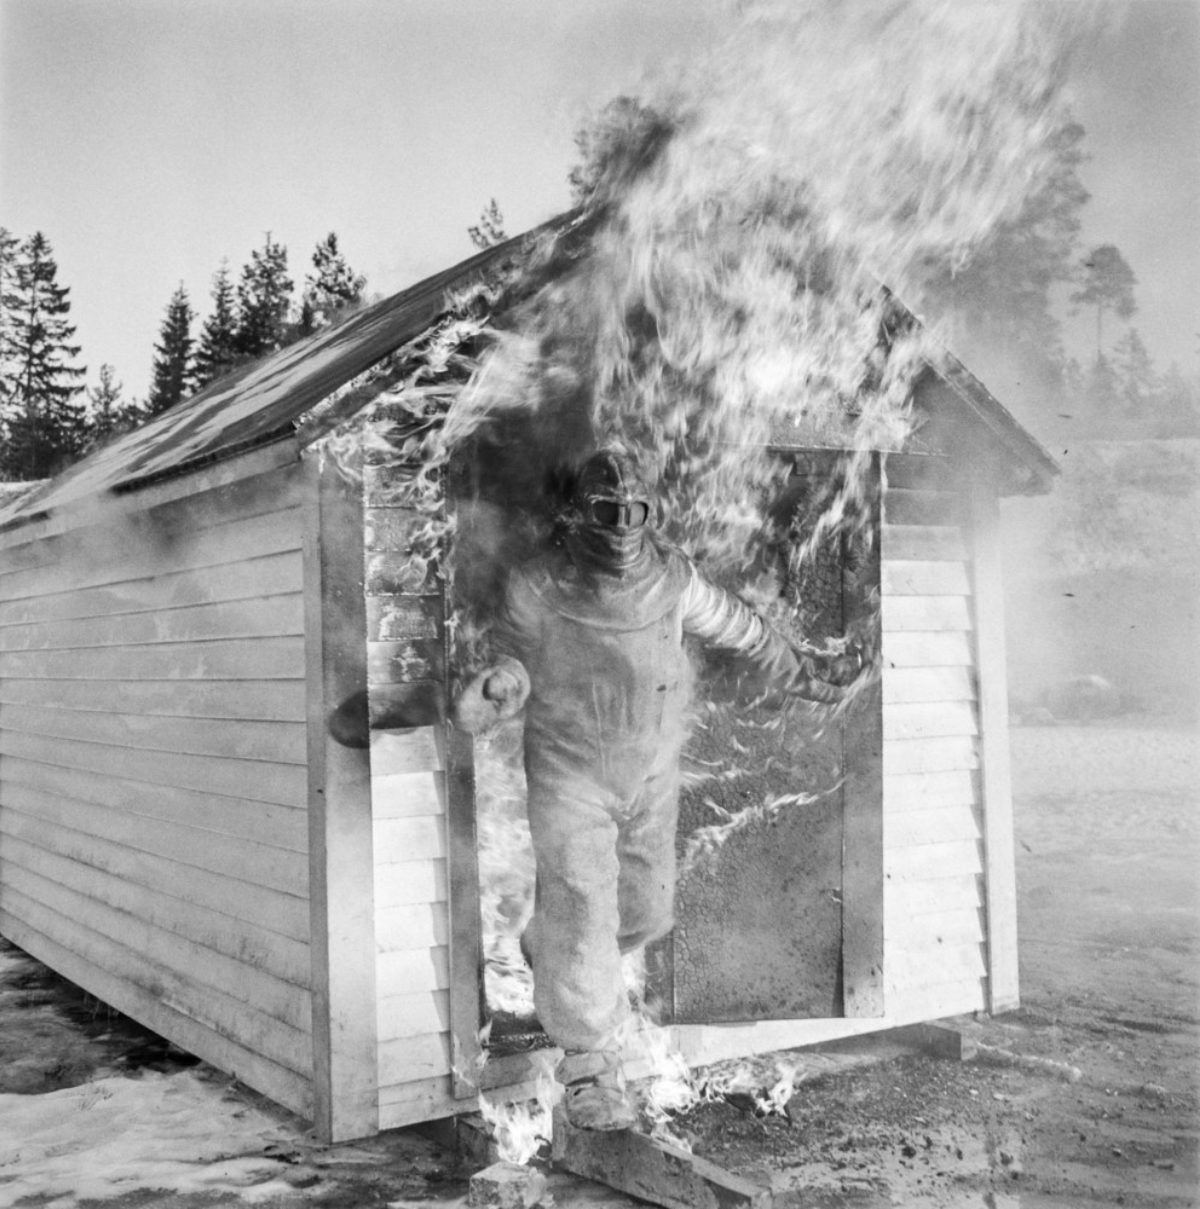 In 1957, Matti Jämsä tested the asbestos suit belonging to Suomen Mineraali. He remained in the flames for so long that the assistants began to fear for the worse. Photo: UA Saarinen / Press Photo Archive JOKA / Finnish Heritage Agency